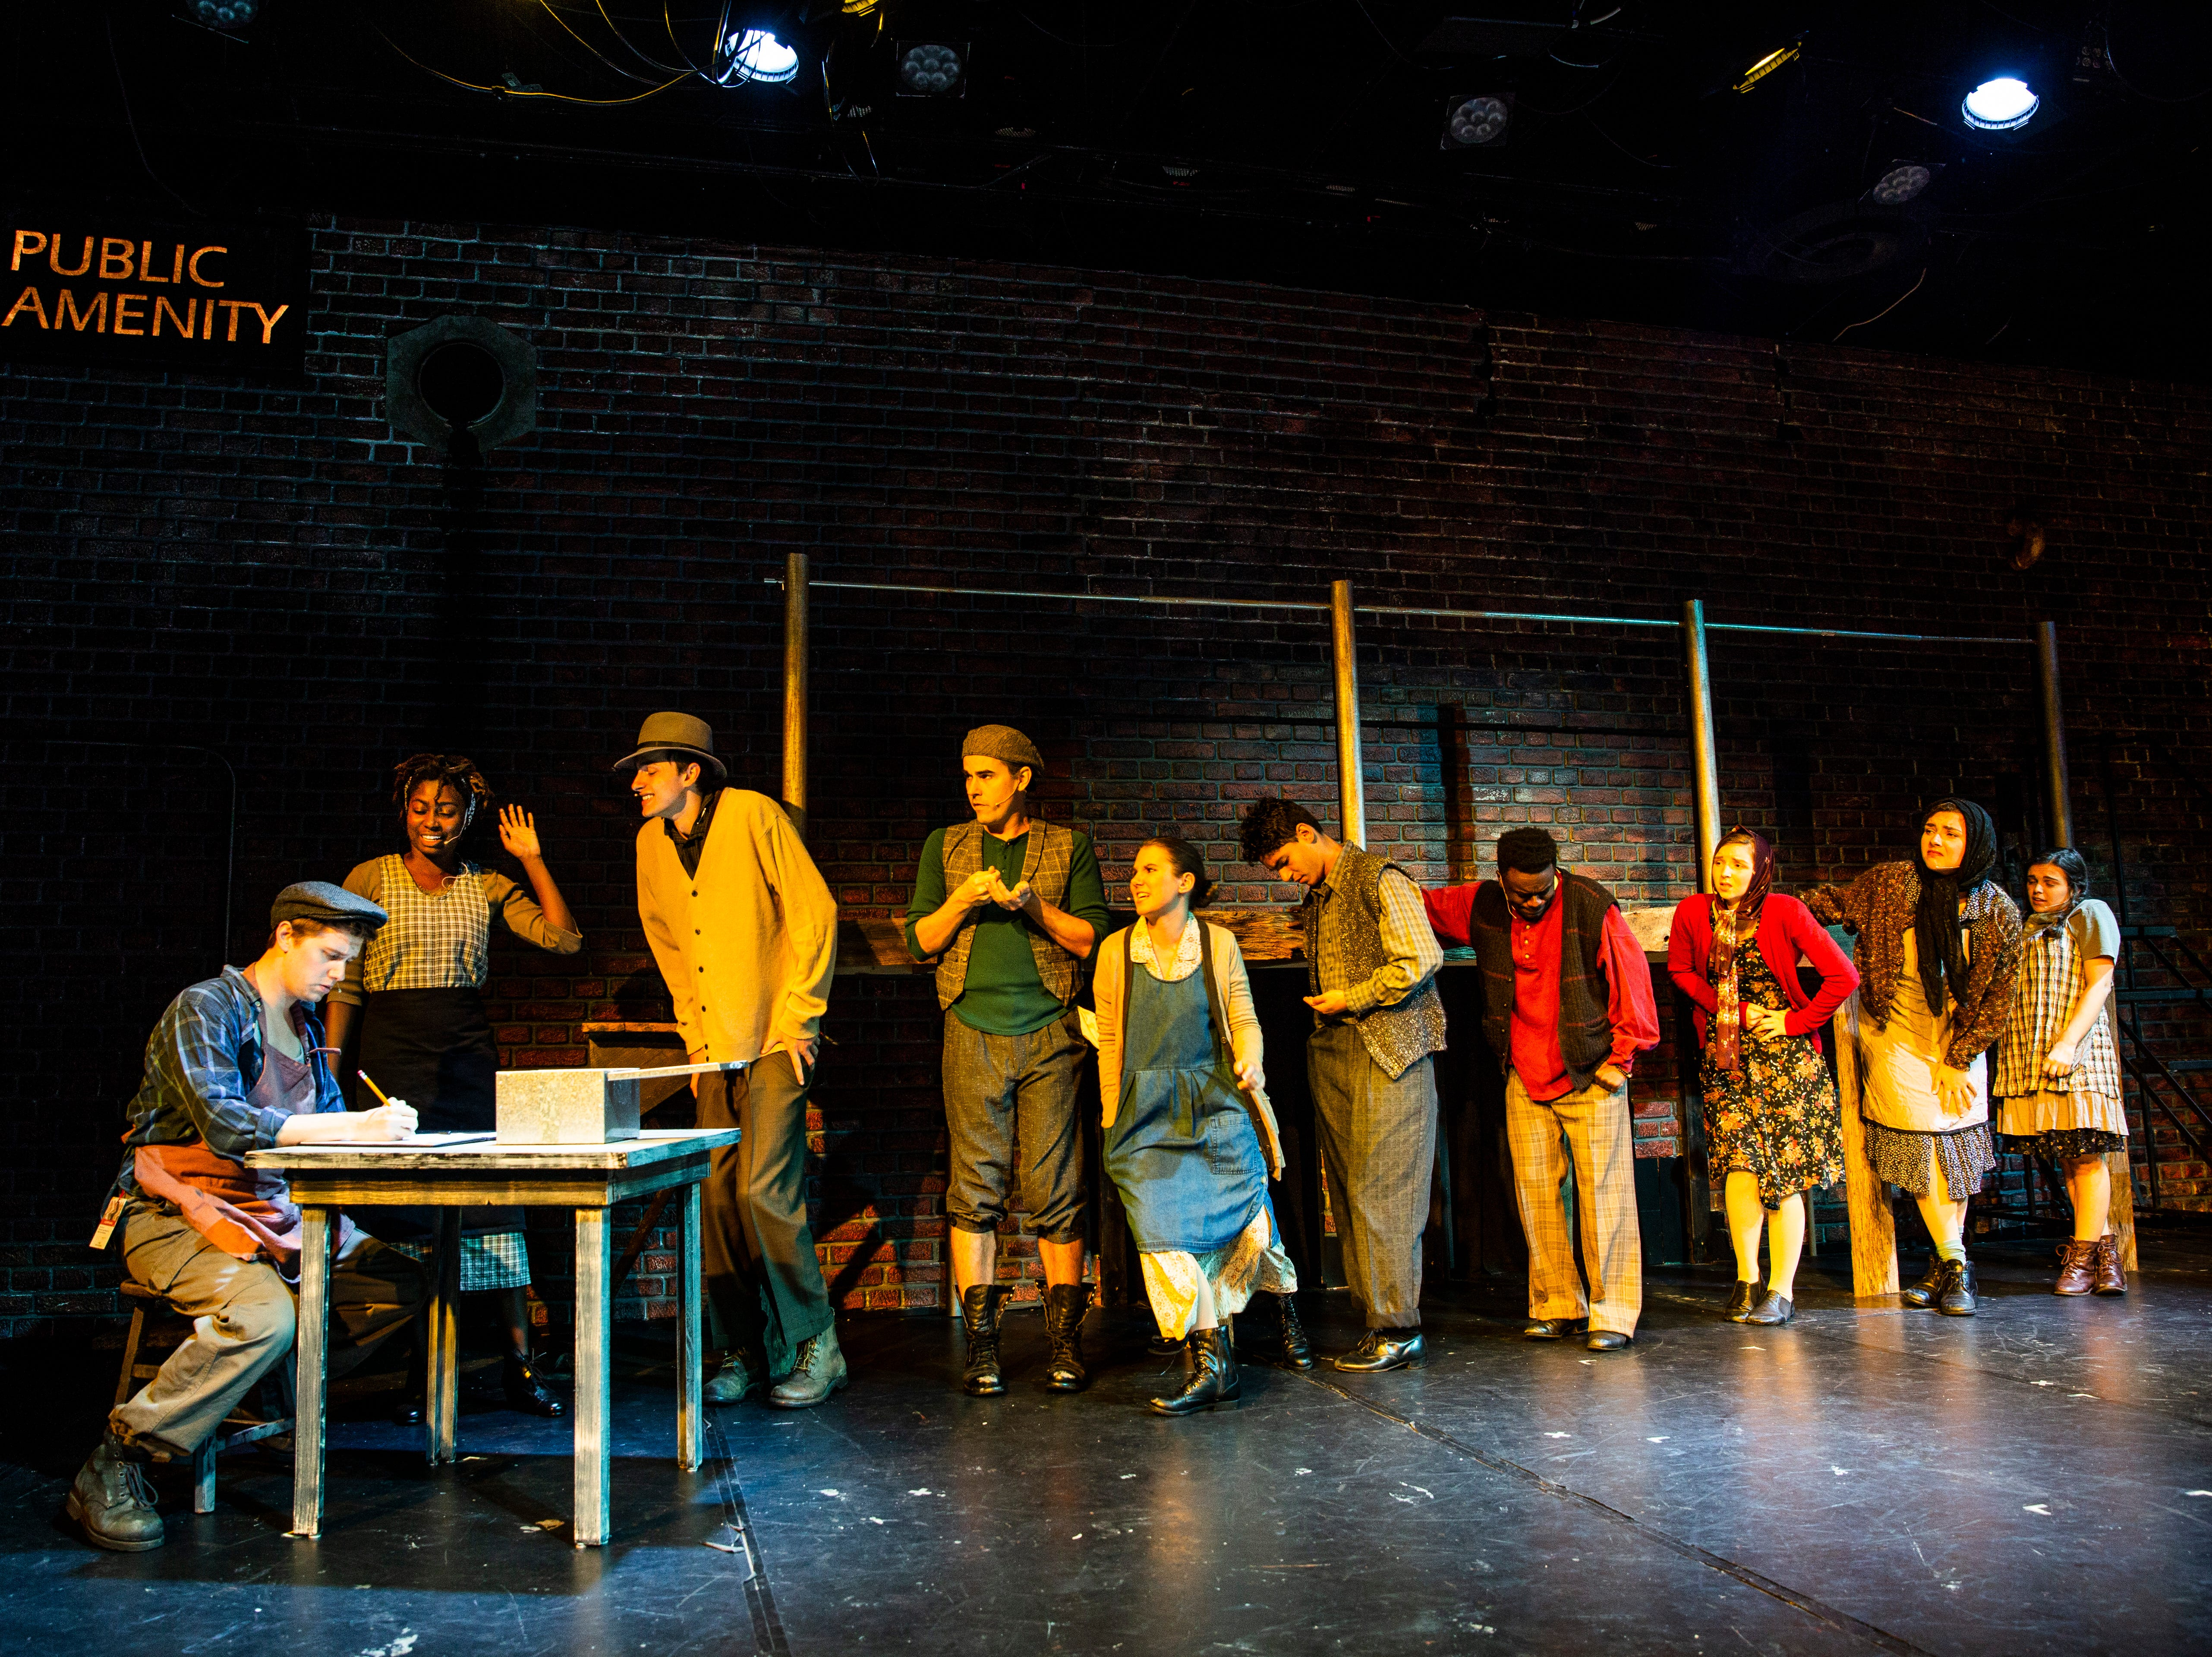 Cast members rehearse a scene for TheatreZone's upcoming production of Urinetown in collaboration with Florida Gulf Coast University in Fort Myers on Monday, Oct. 8, 2018. Urinetown is a hilarious musical satire of the legal system, capitalism, social irresponsibility, populism, bureaucracy, corporate mismanagement, municipal politics and musical theatre itself.